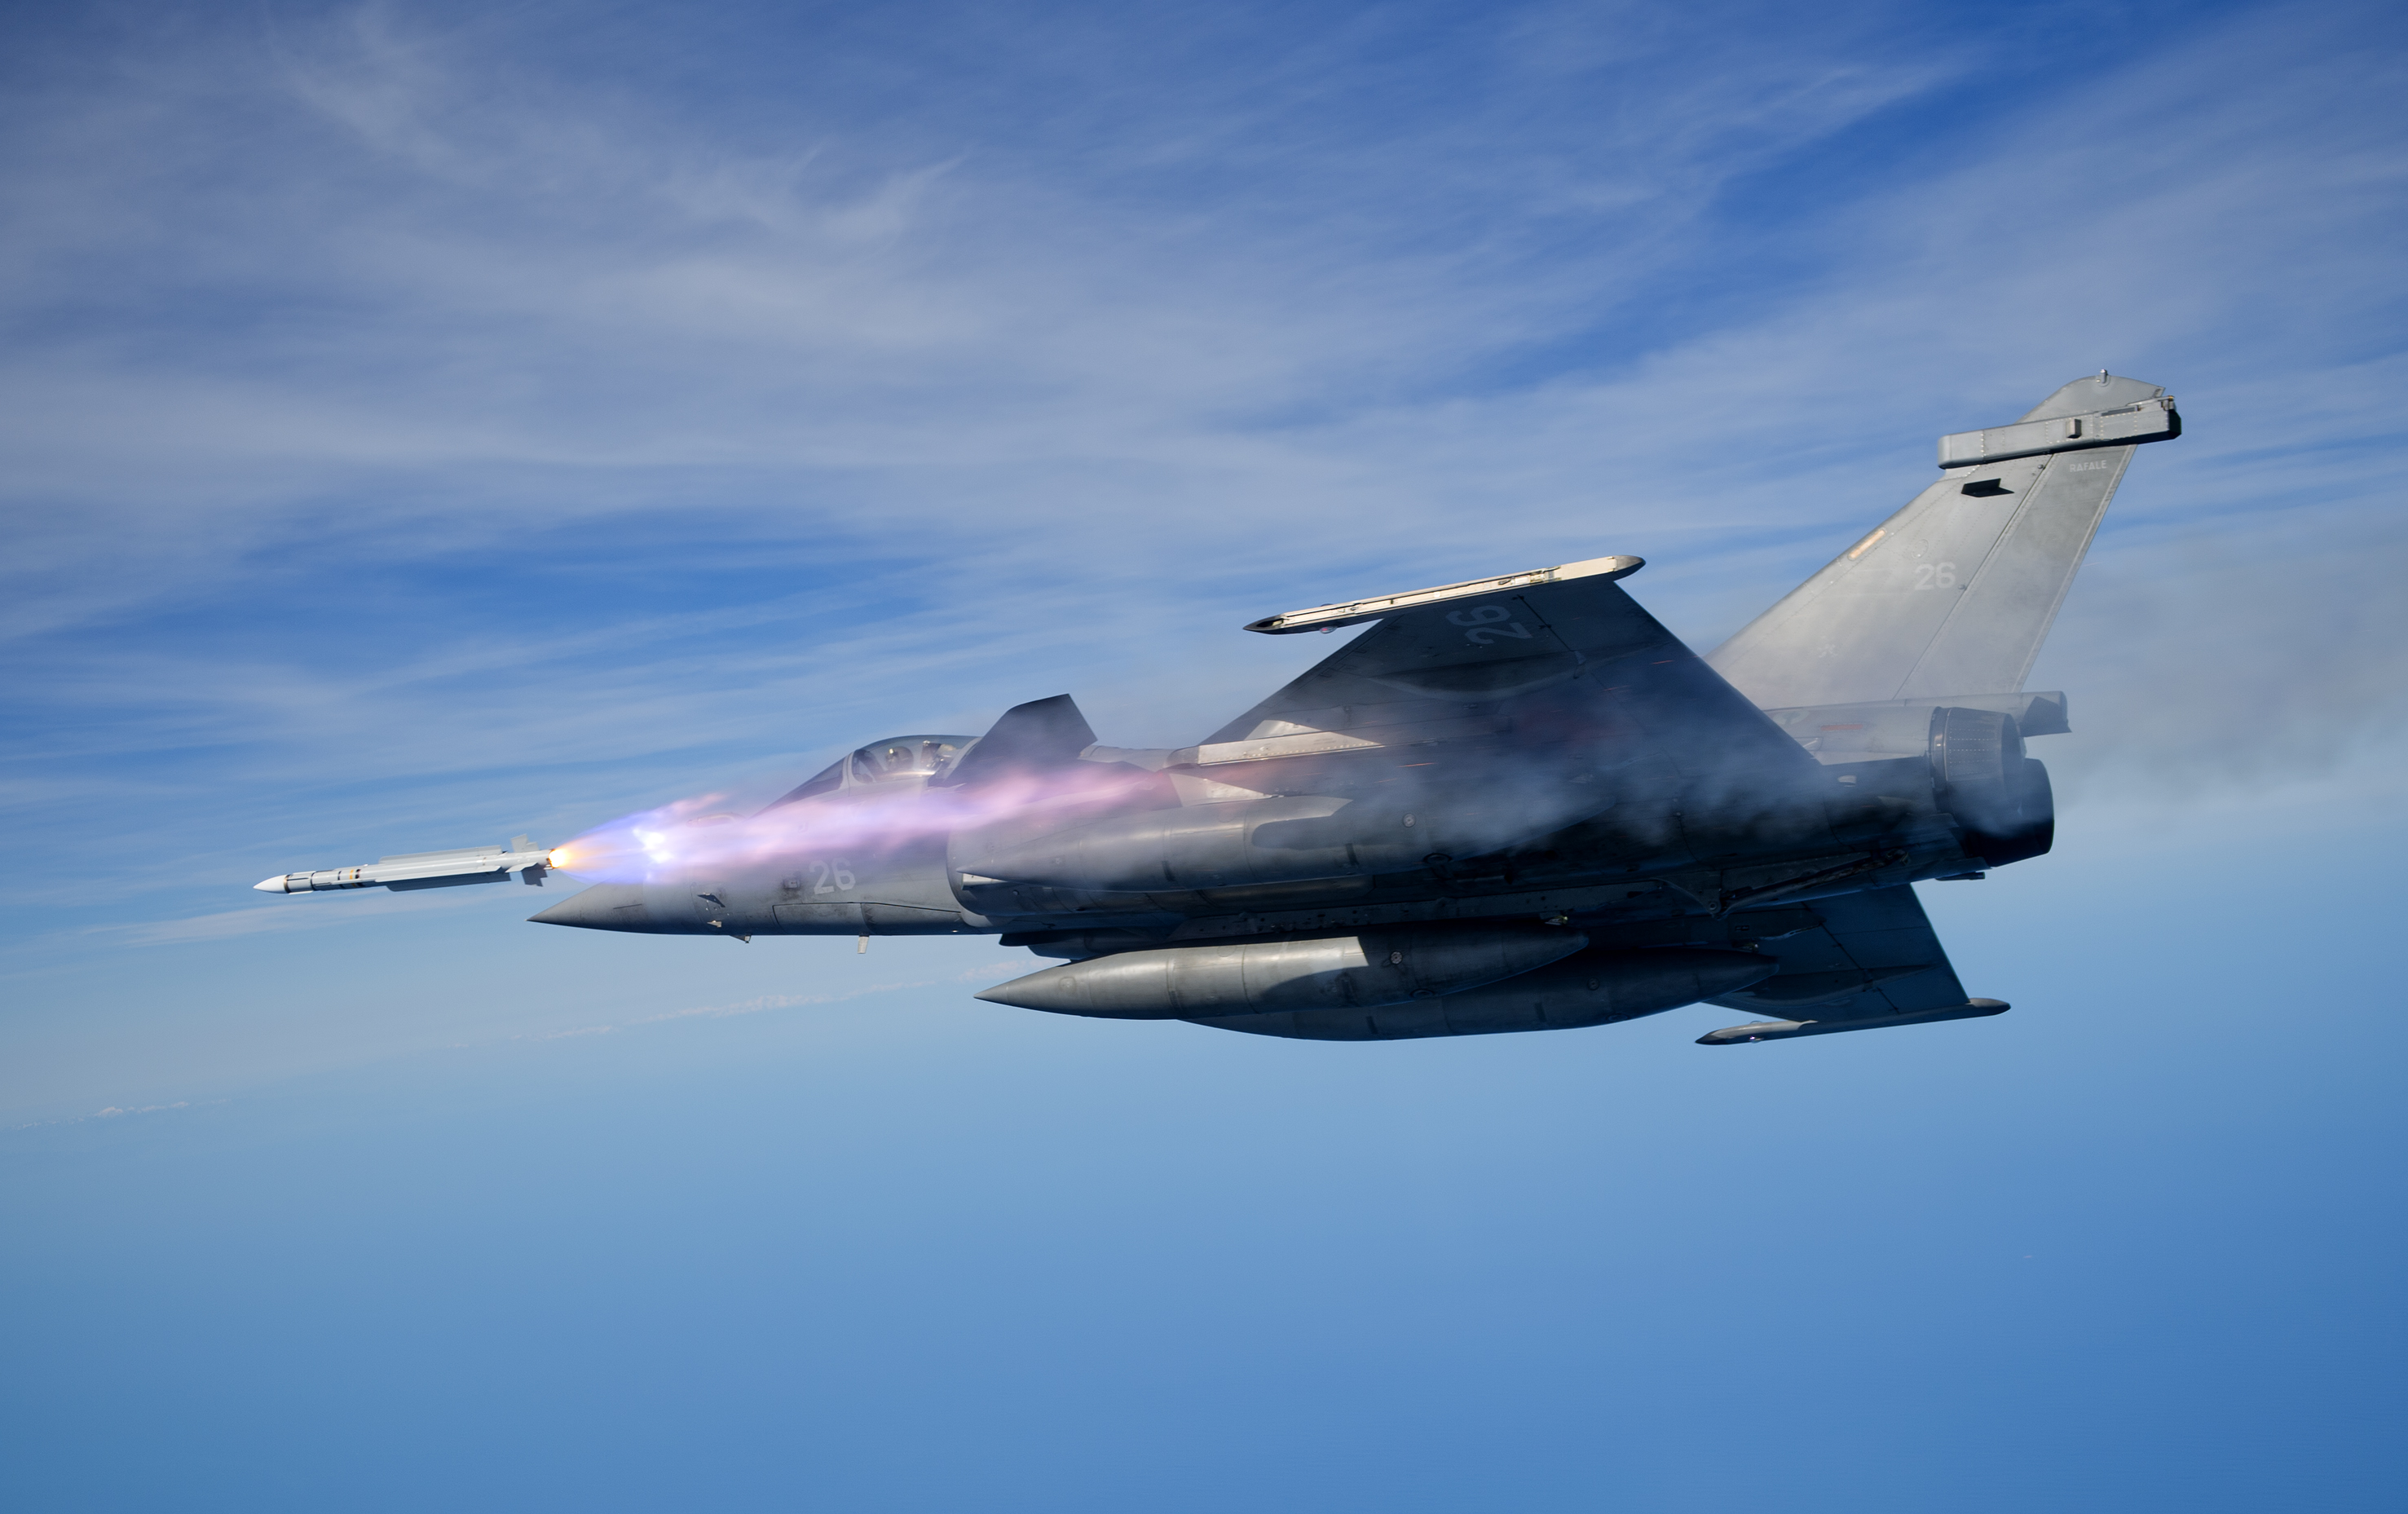 MICA fired from Rafale MBDA